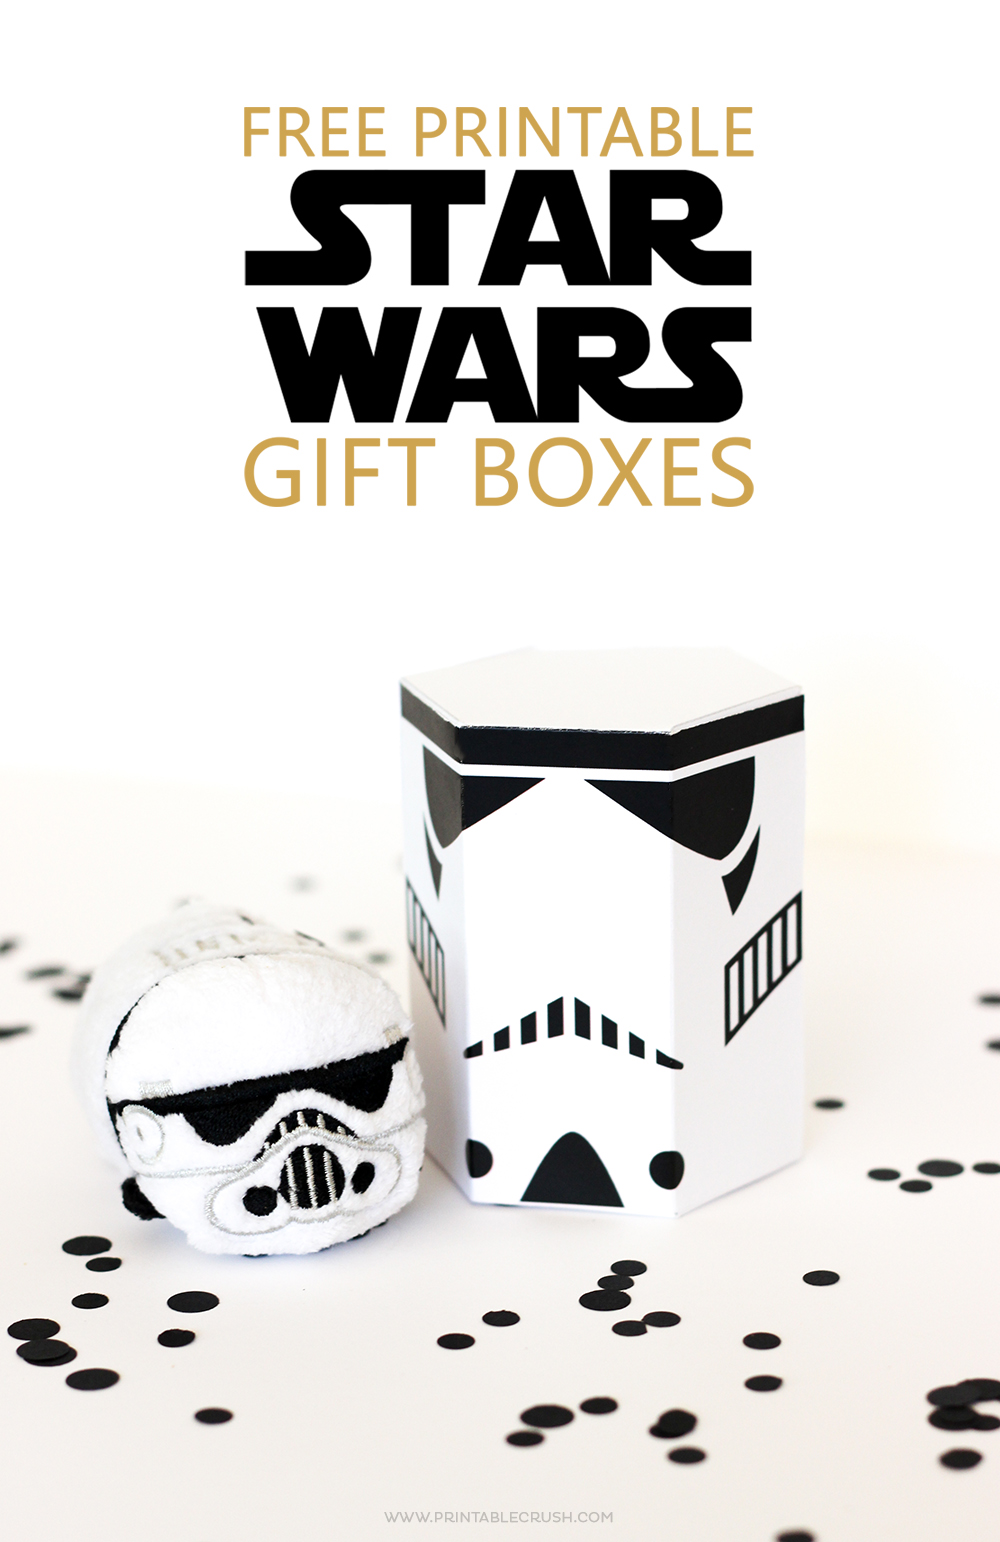 These FREE Star Wars Printable Gift Boxes are perfect for the Star Wars fan in your life. You can fill them with treats, presents or cute Tsum Tsums!